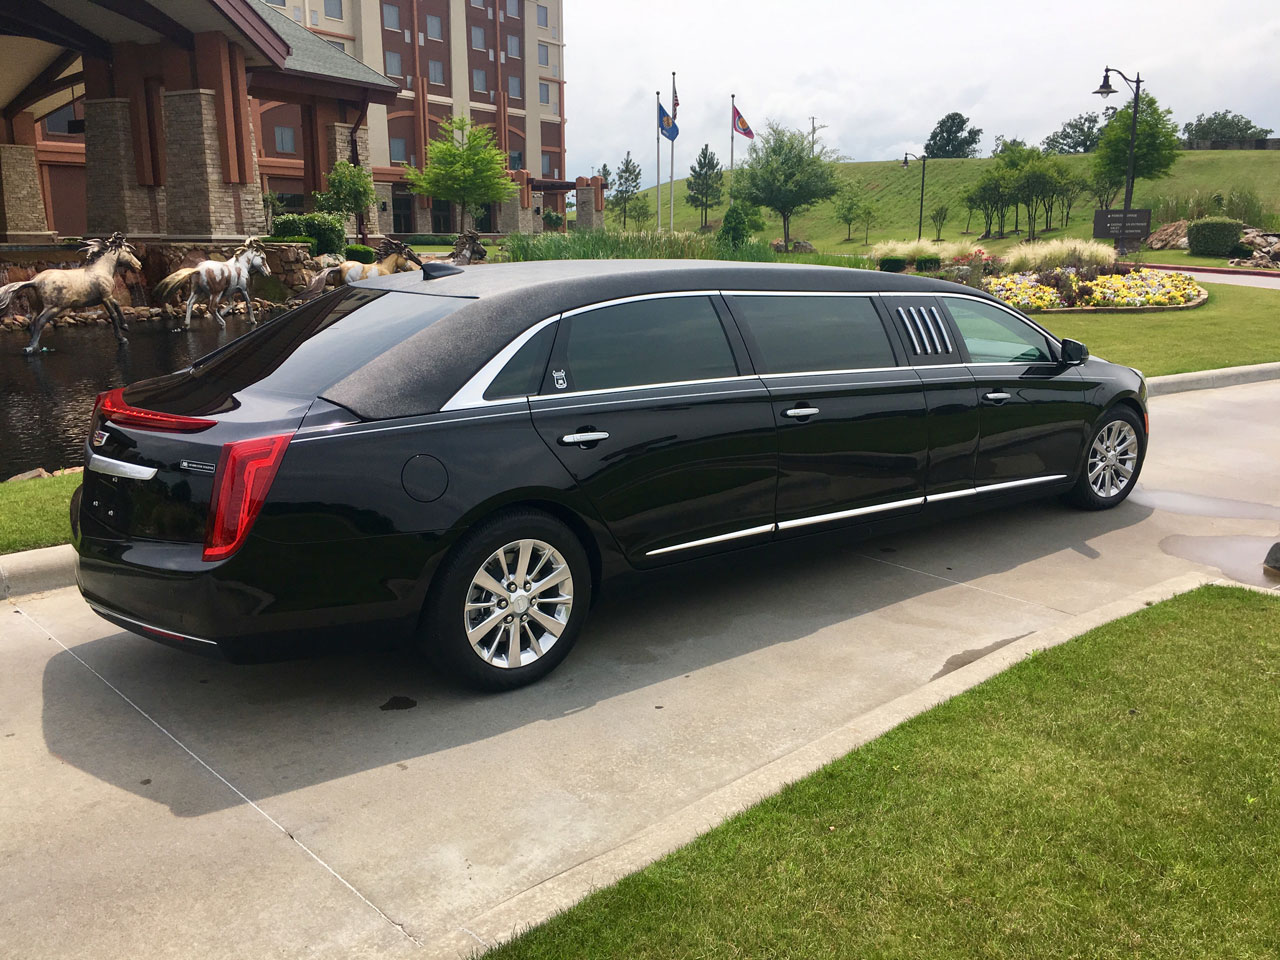 2019 Armbruster Stageway Cadillac 70 Stretch Limousine 7